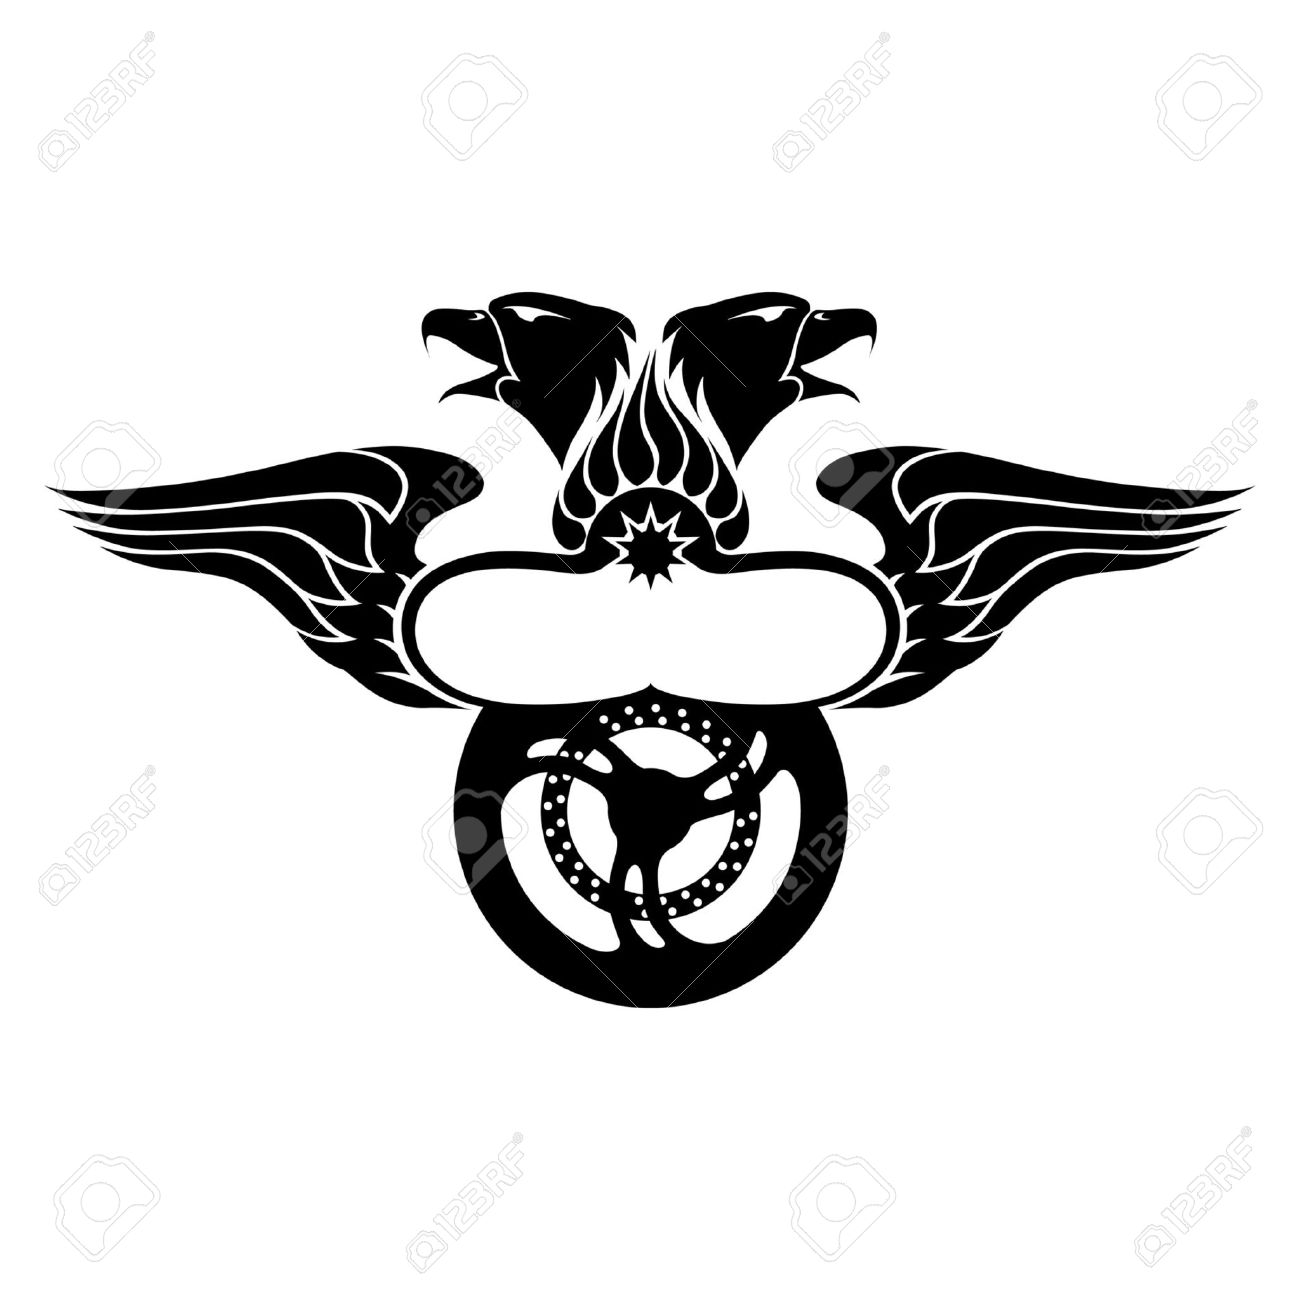 Emblem with wing eagles fire and motorbike wheel royalty free emblem with wing eagles fire and motorbike wheel stock vector 9084319 biocorpaavc Gallery